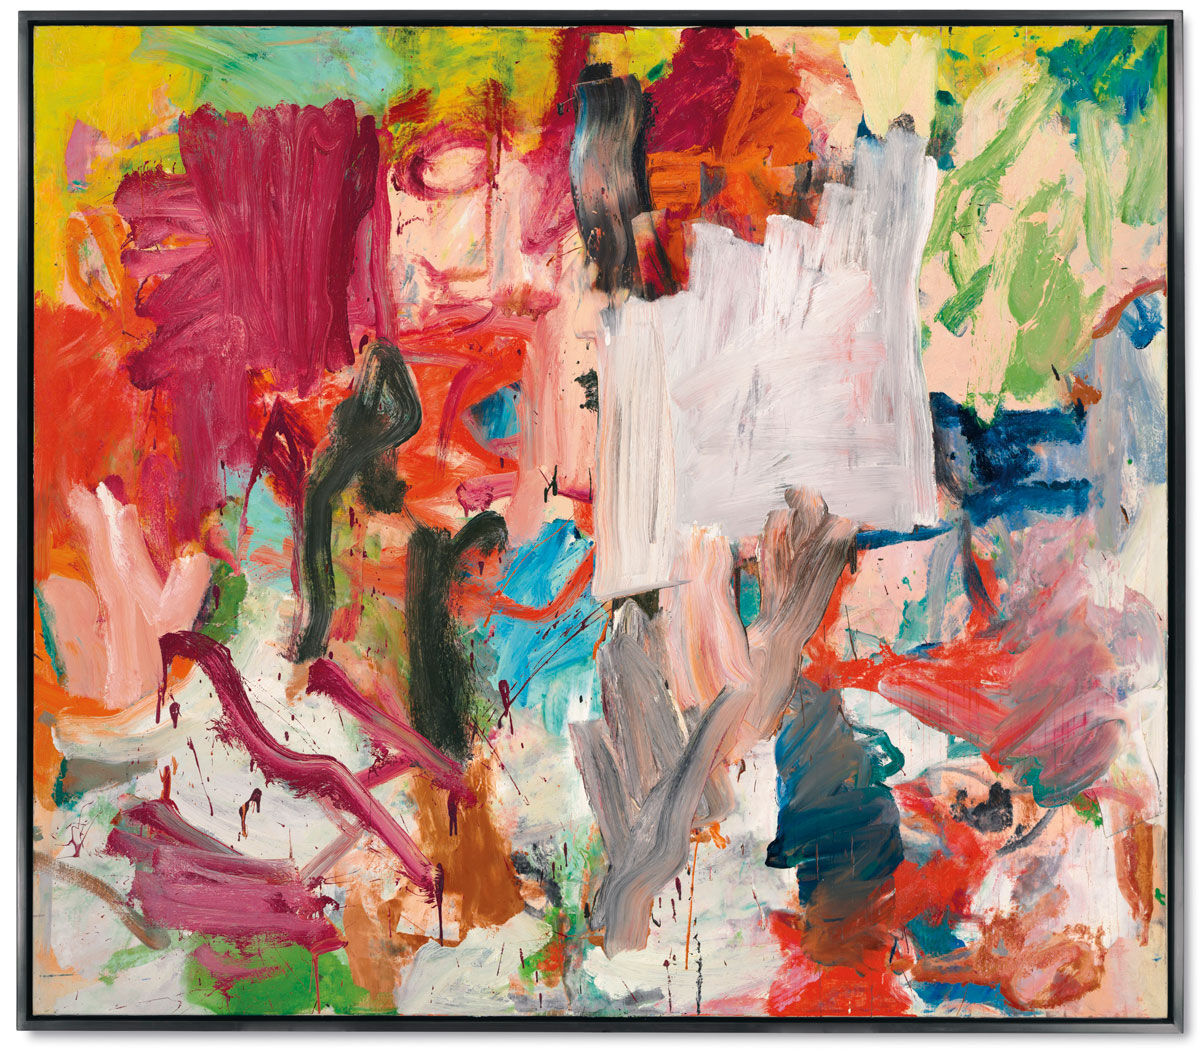 Willem de Kooning, Untitled XXV, 1977. Image: Christie's Images Ltd. 2016